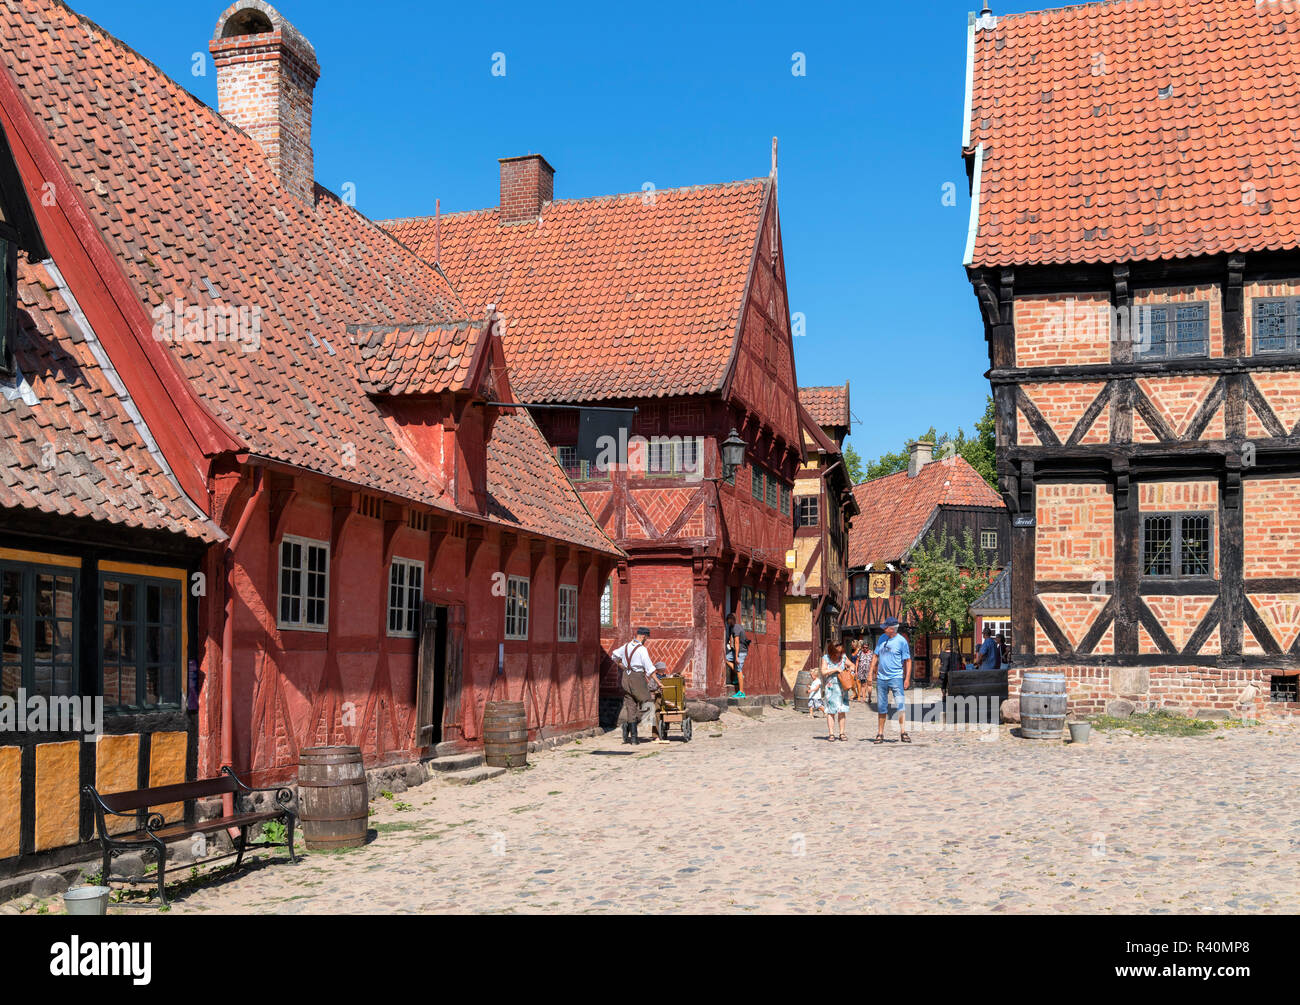 The Market Square (Torvet) in The Old Town (Den Gamle By), an open air museum in Aarhus, Denmark - Stock Image